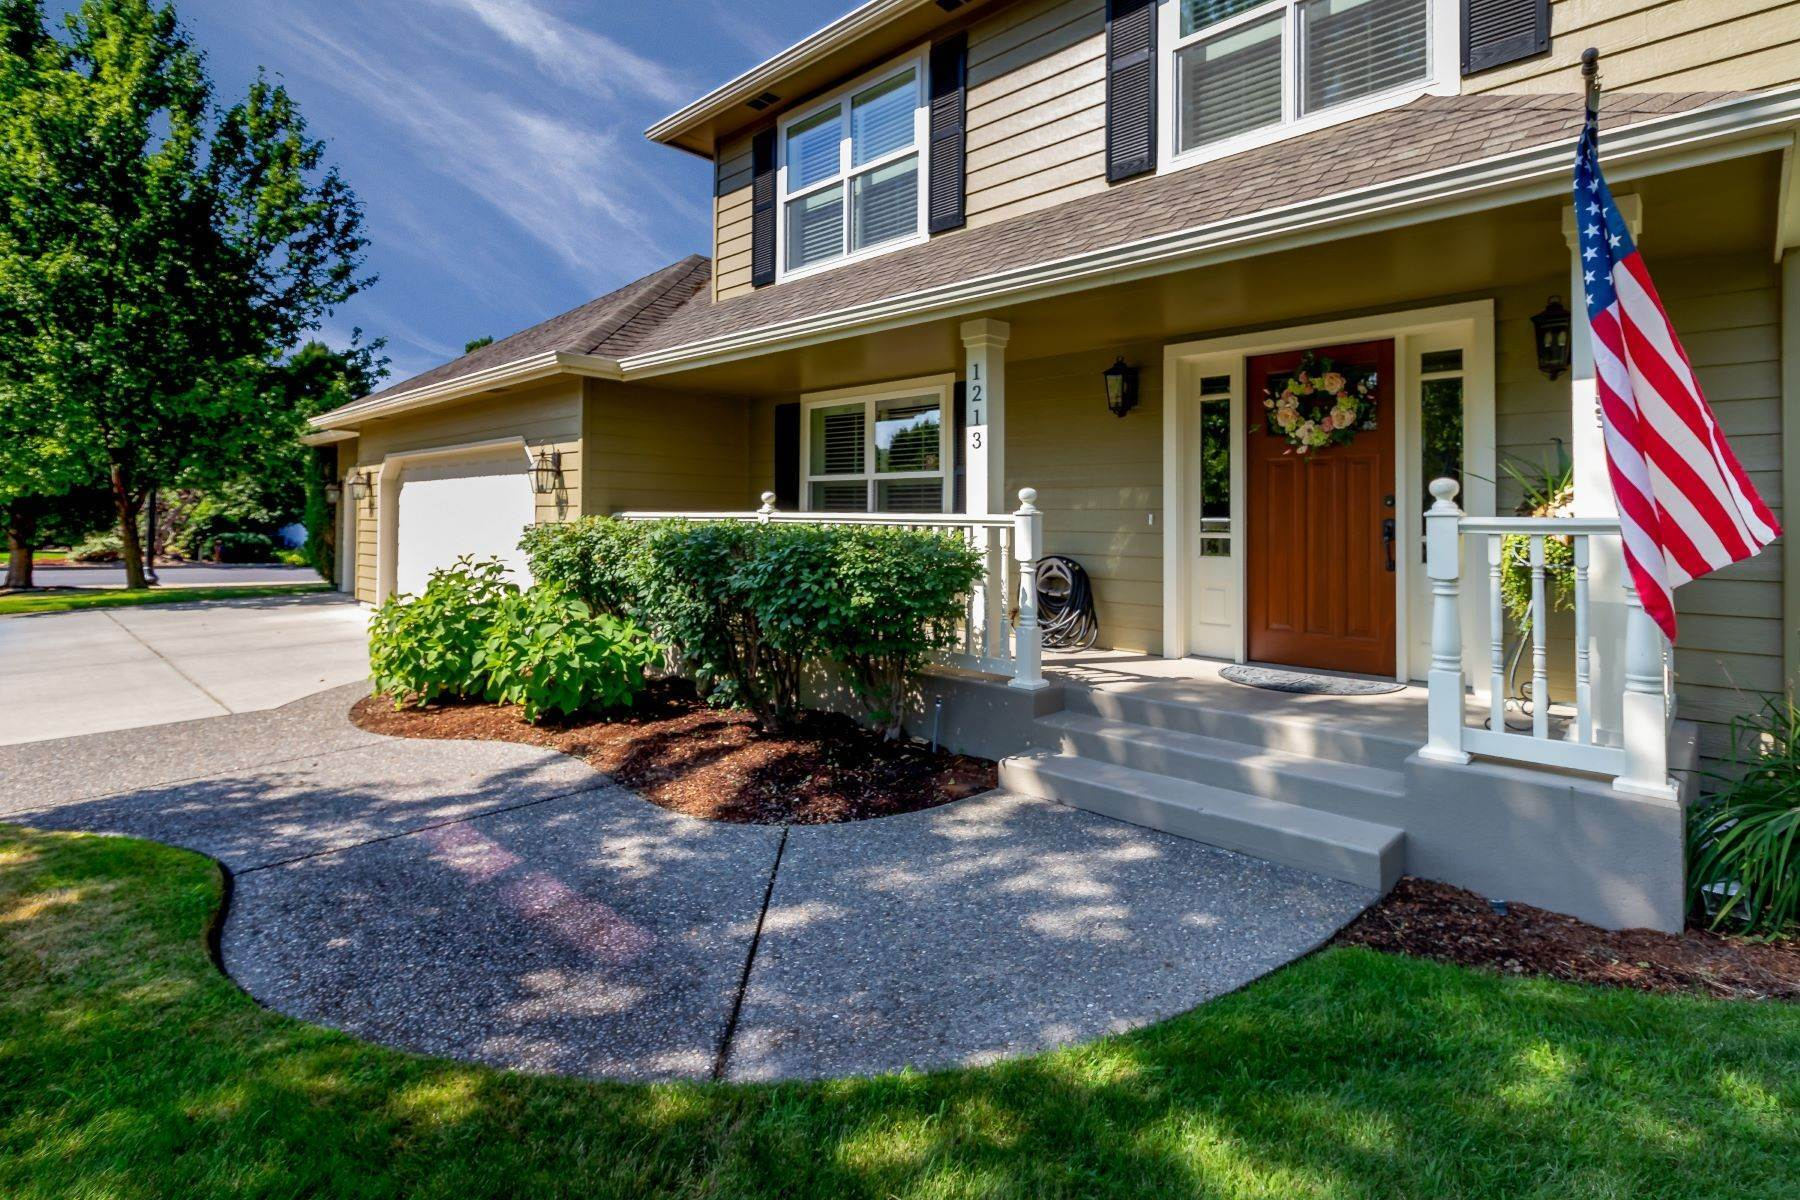 Single Family Homes for Sale at Immaculate Colonial 1213 Yellowhawk Pl Walla Walla, Washington 99362